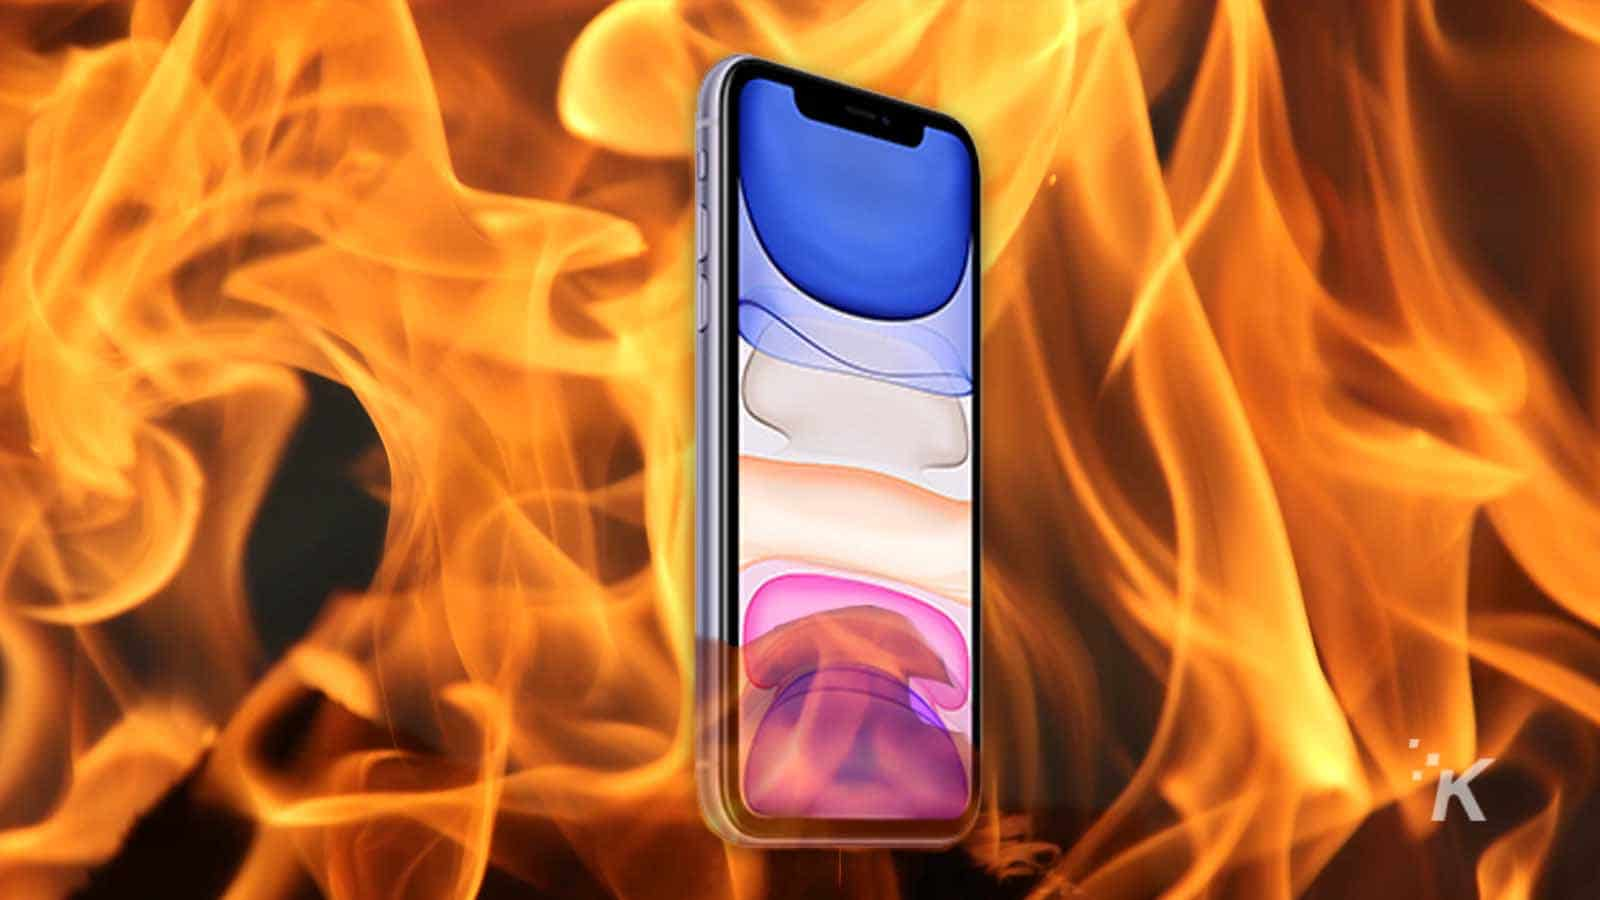 iphone 11 in flames